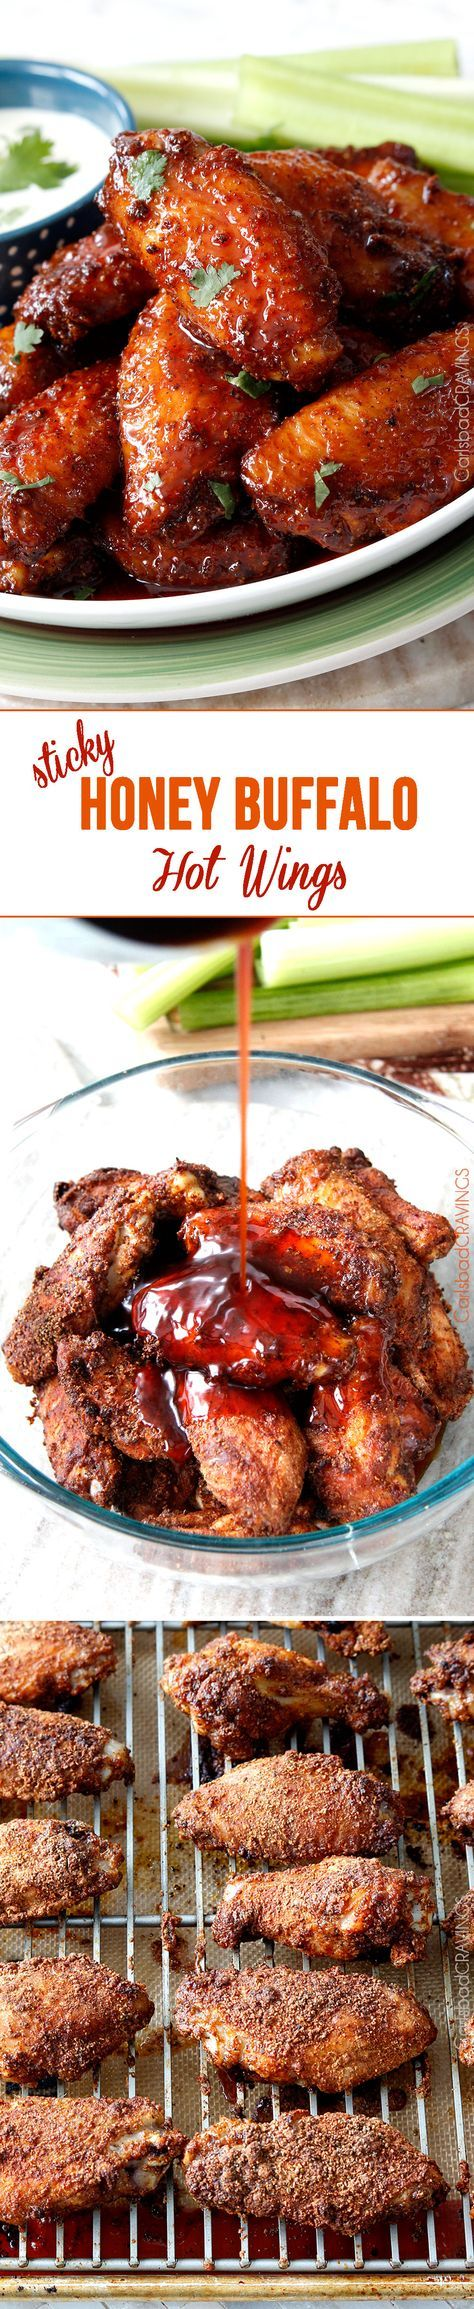 Perfect for New Years! Sticky Buffalo Honey Hot Wings - the BEST buffalo wings you will ever devour and as easy as tossing in a rub, baking and coating in an easy, tantalizing sauce. #appetizer #wings #buffalowings